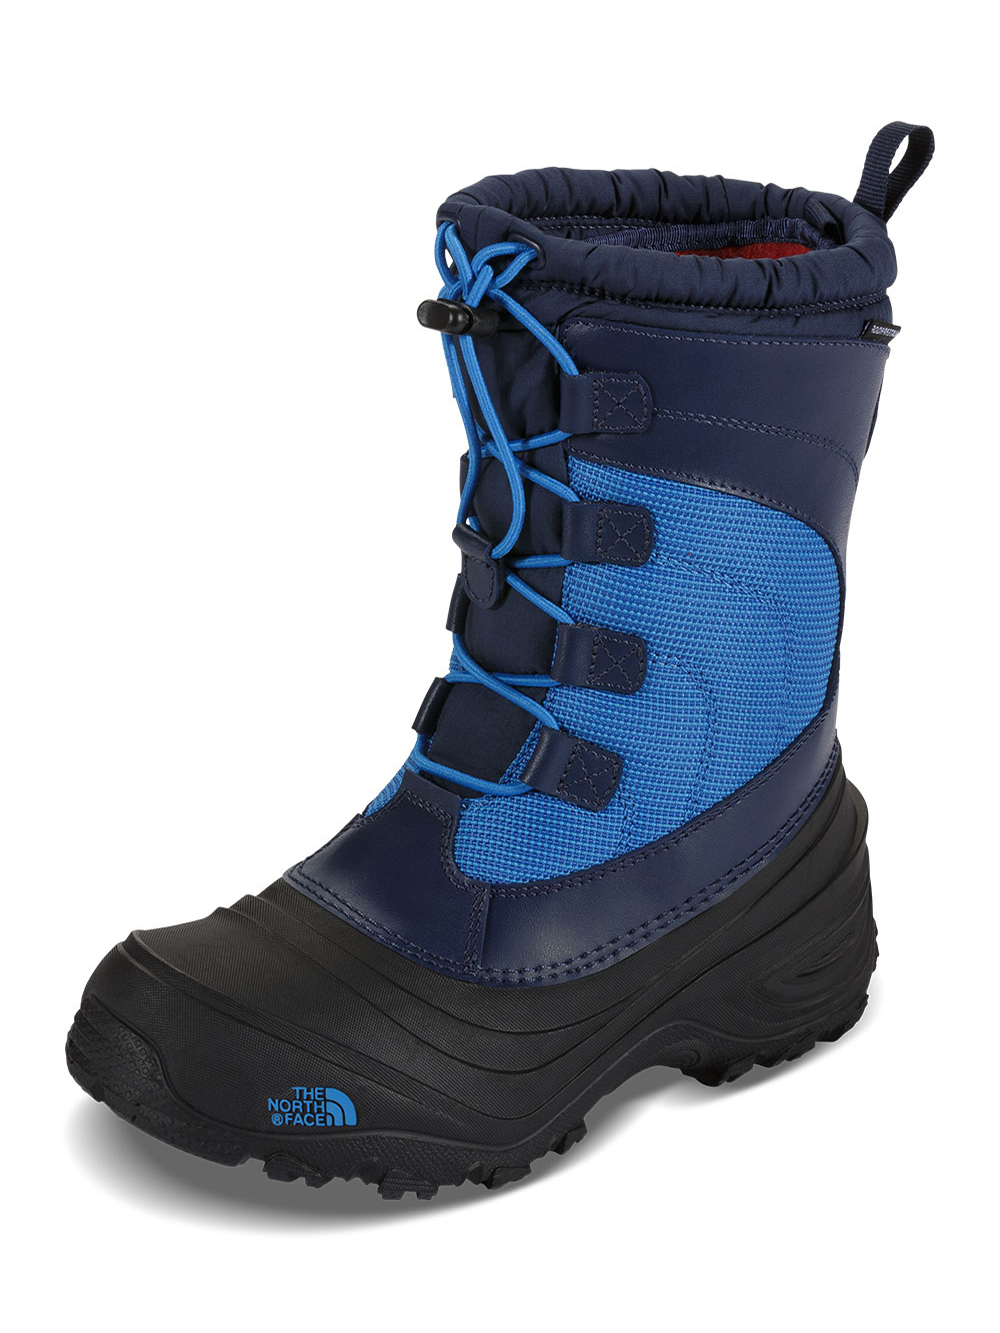 The North Face Boys' Alpenglow IV Boots (Toddler Sizes 10 - 12) - cosmic blue/blue aster, 11 toddler